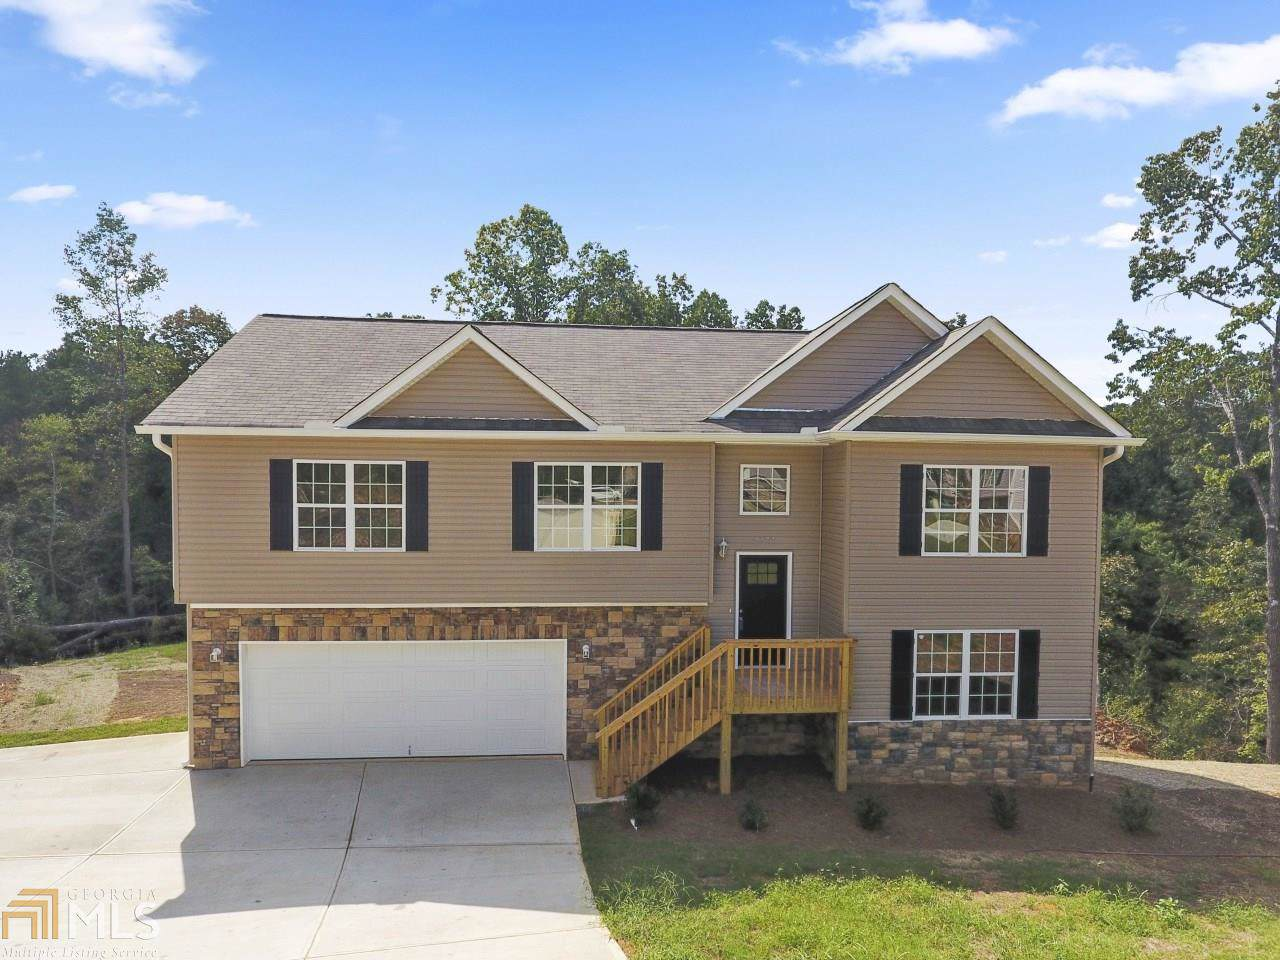 2277 Smallwood Springs Dr - Photo 1